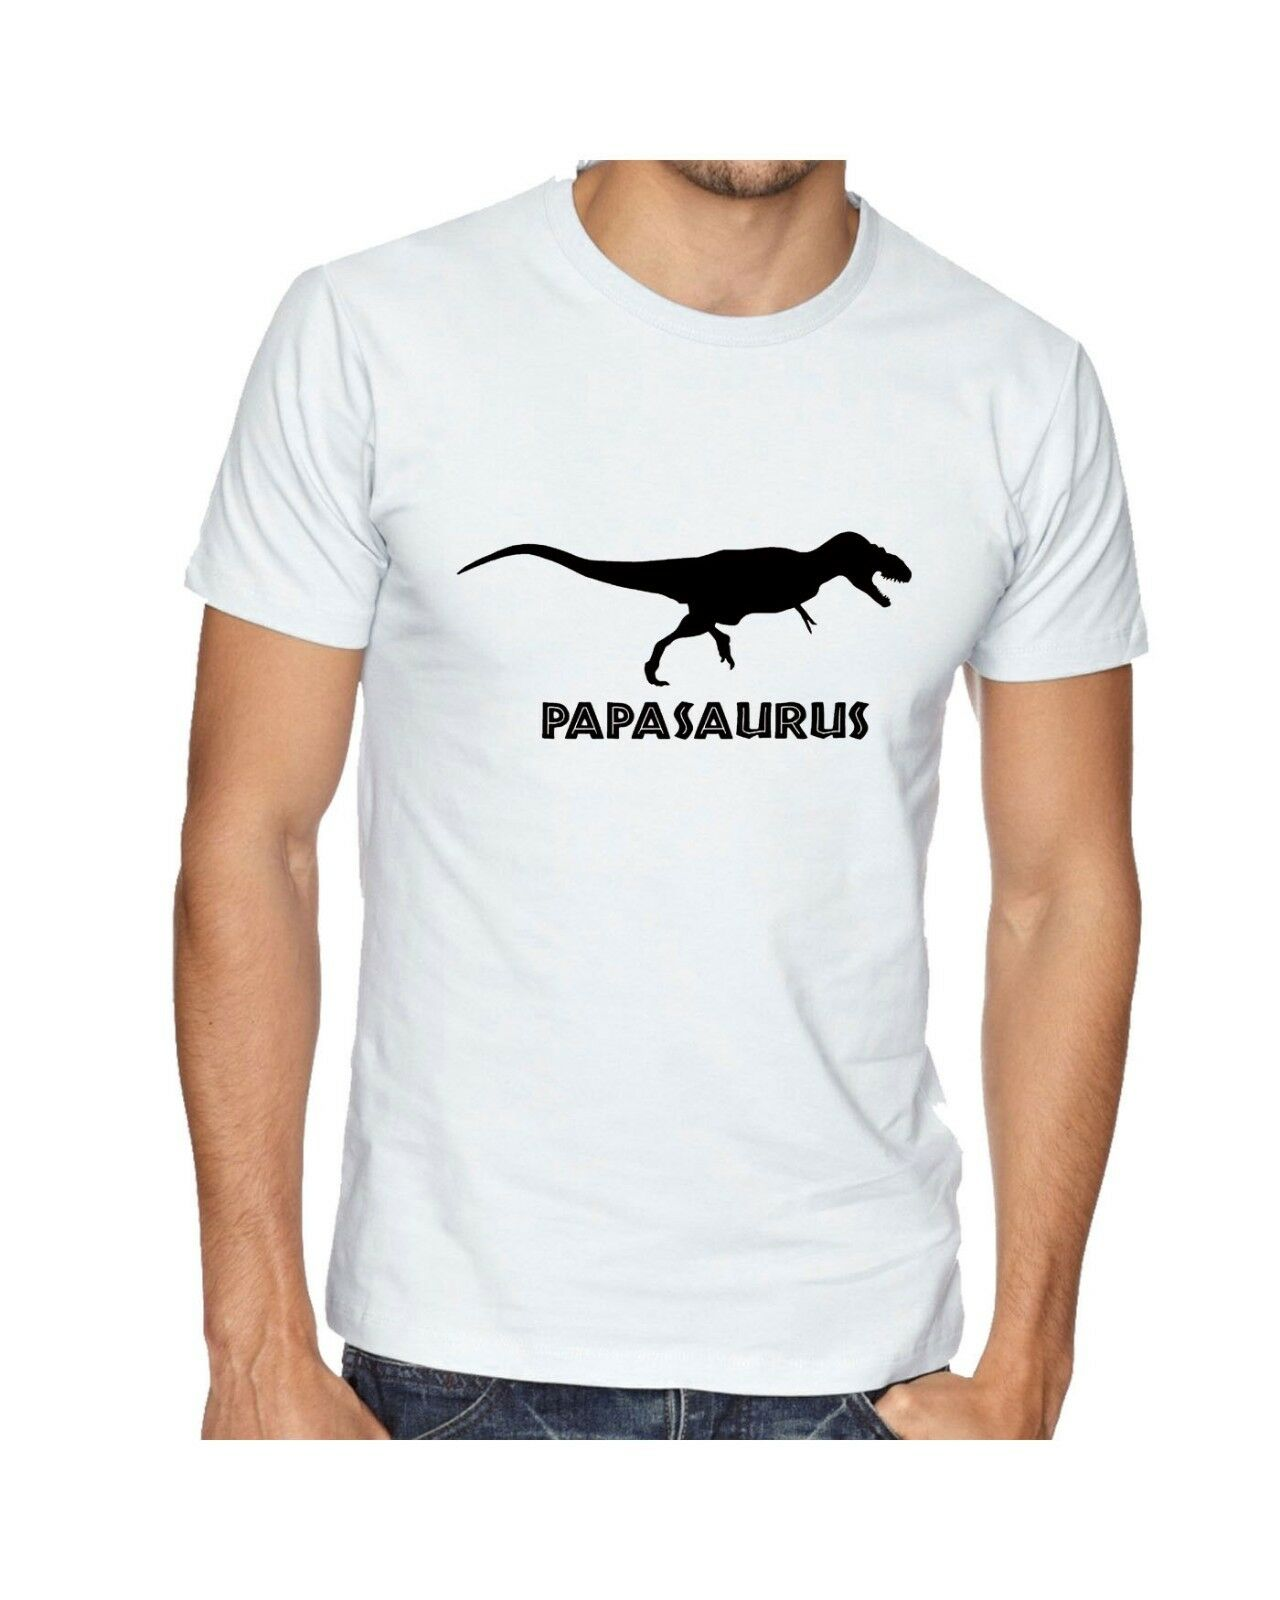 PAPASAURUS T Shirt for Papa Father's Day Tee Christmas Gift Funny Dinosaur Dad